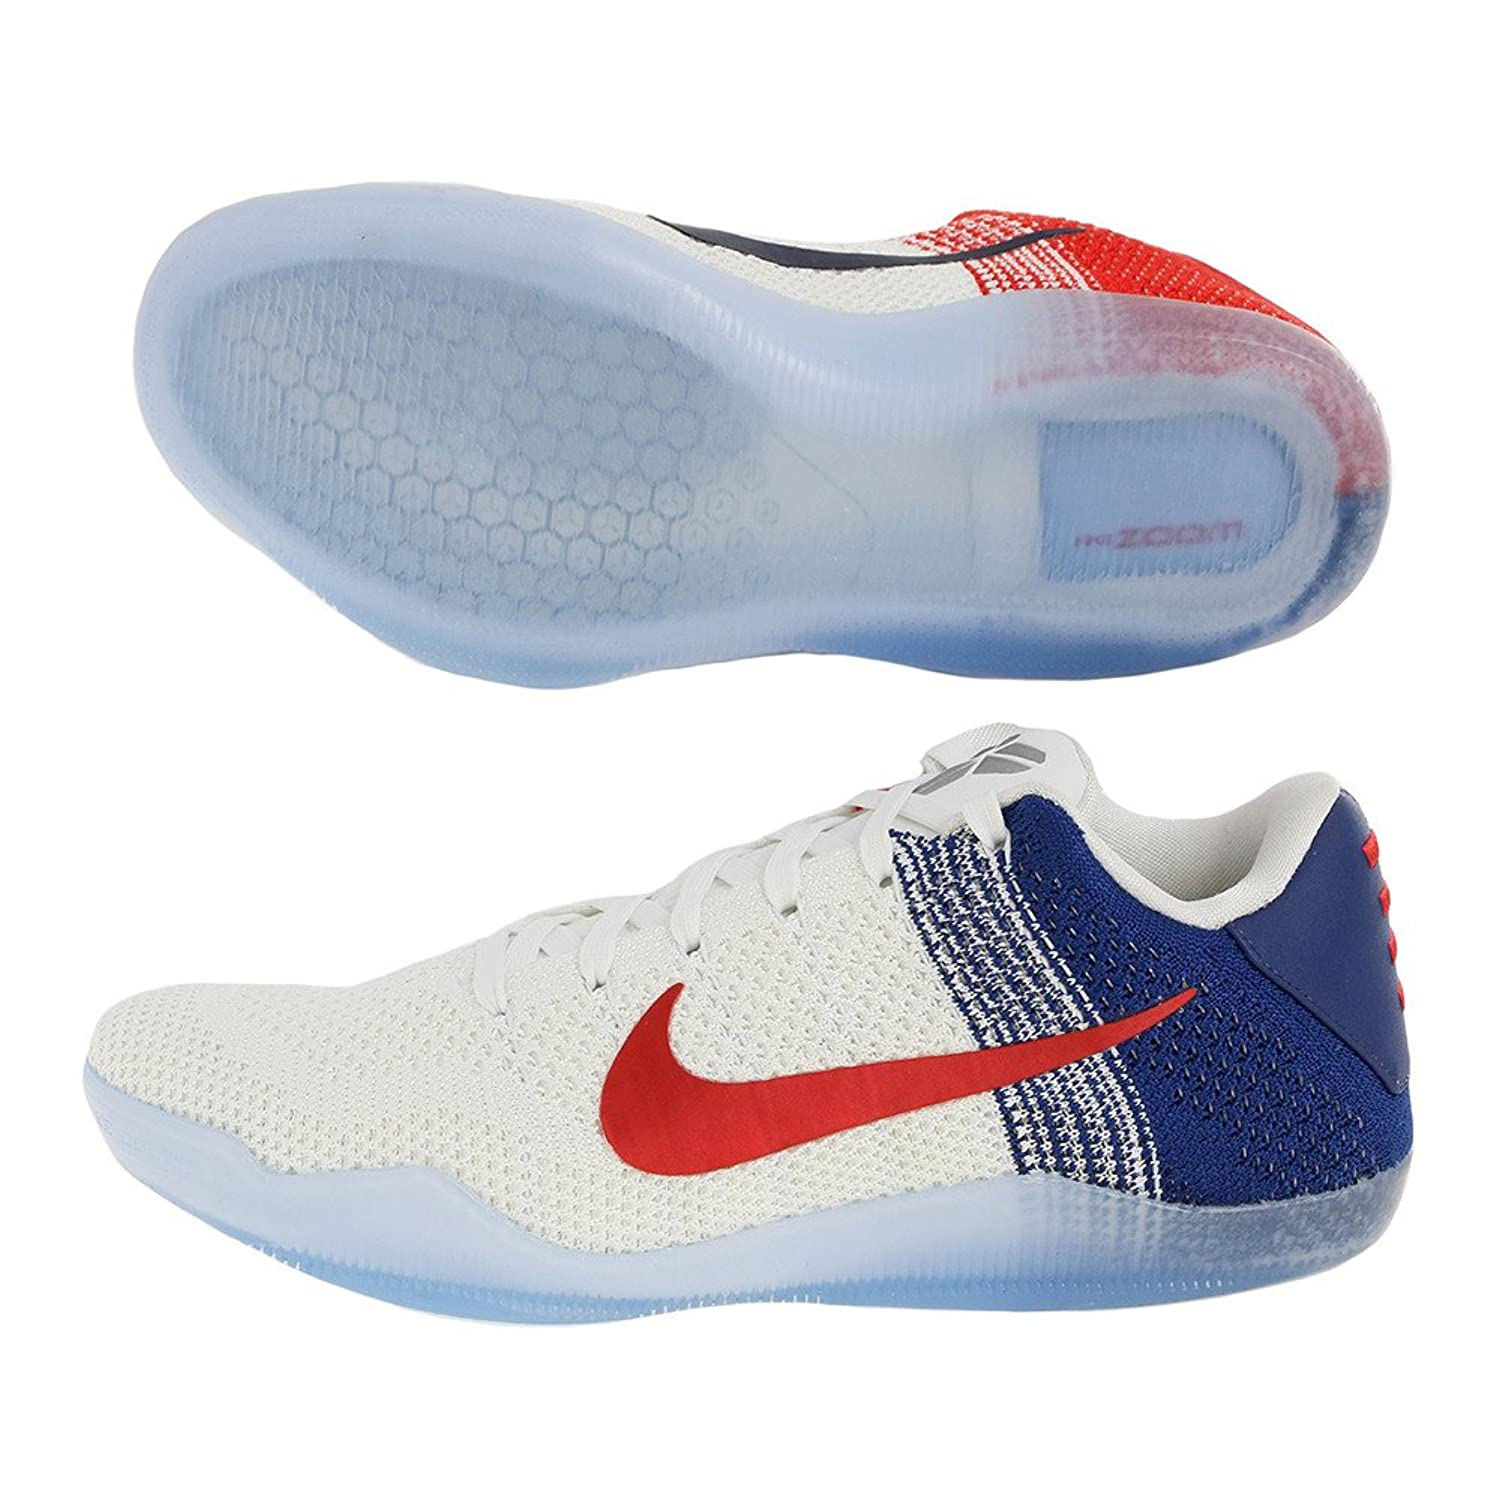 nike Kobe XI Elite Low Mens Basketball Trainers 822675 Sneakers Shoes